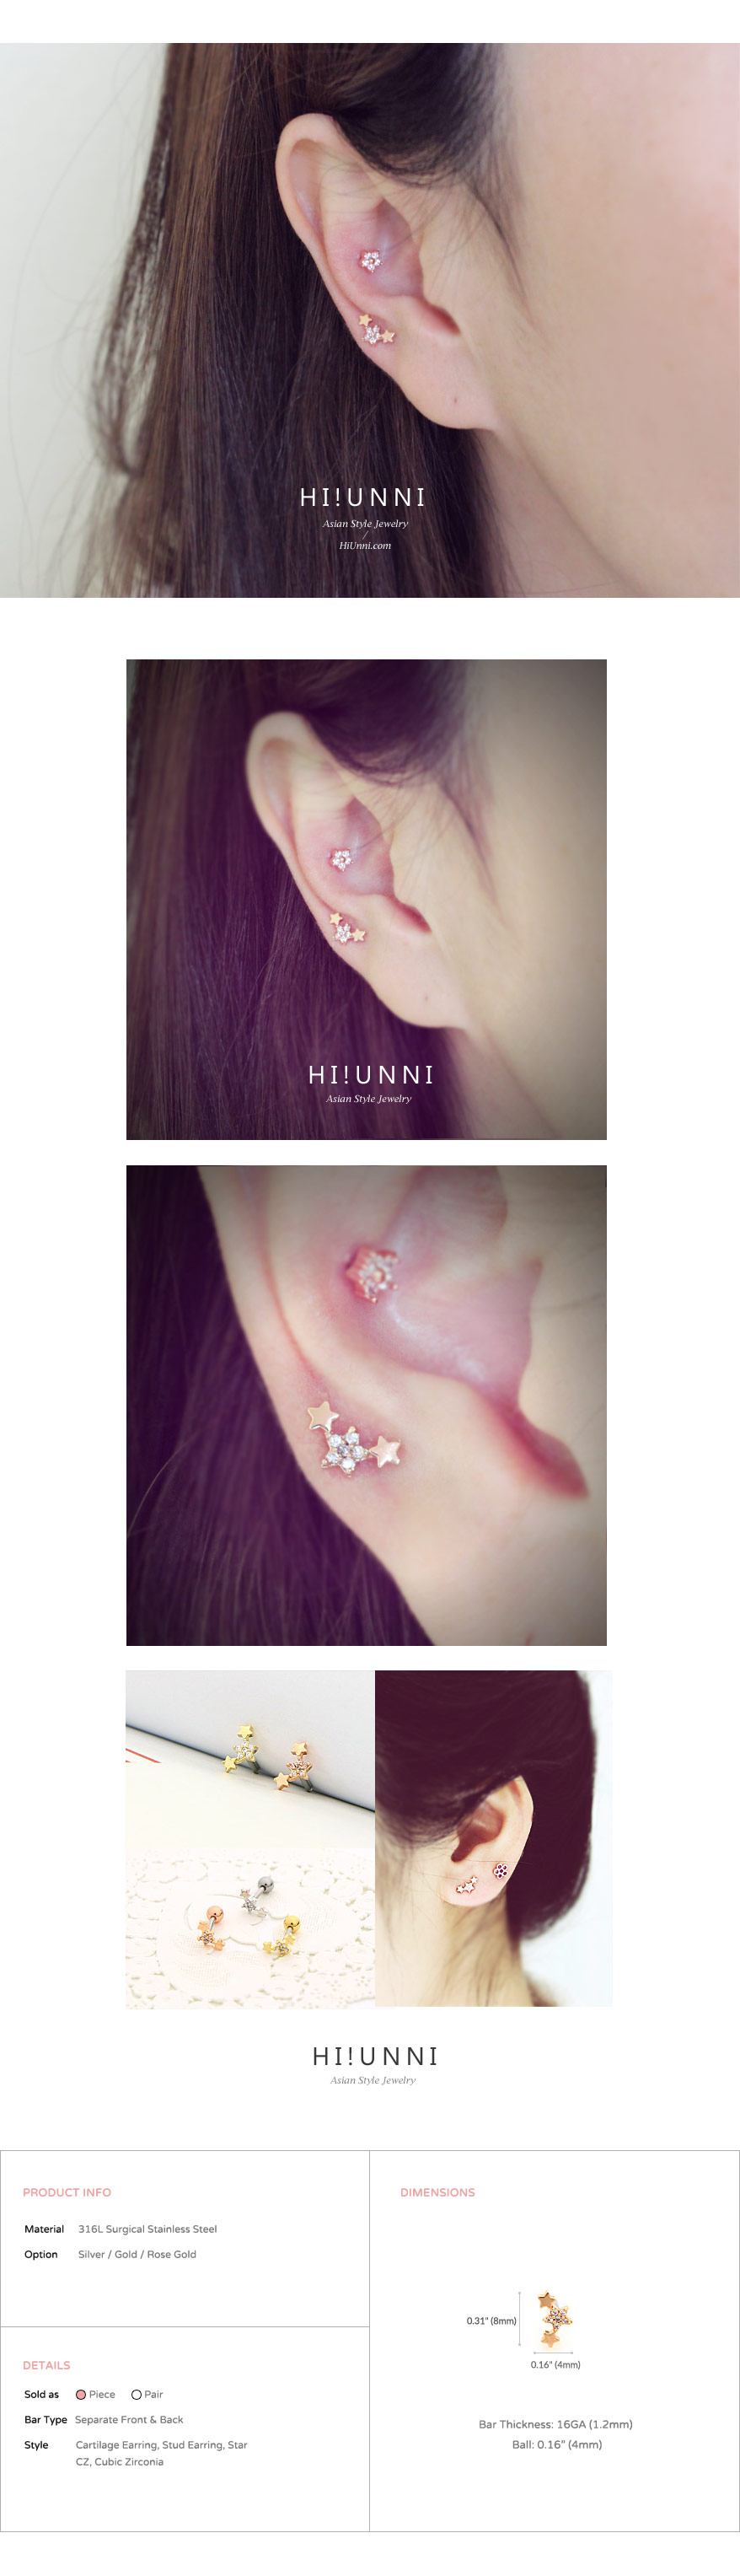 ear_studs_piercing_cartilage_earrings_16g_316l_surgical_korean_asian_style_jewelry_barbell_rose_gold_helix_conch_labret_tragus_star_triple_4